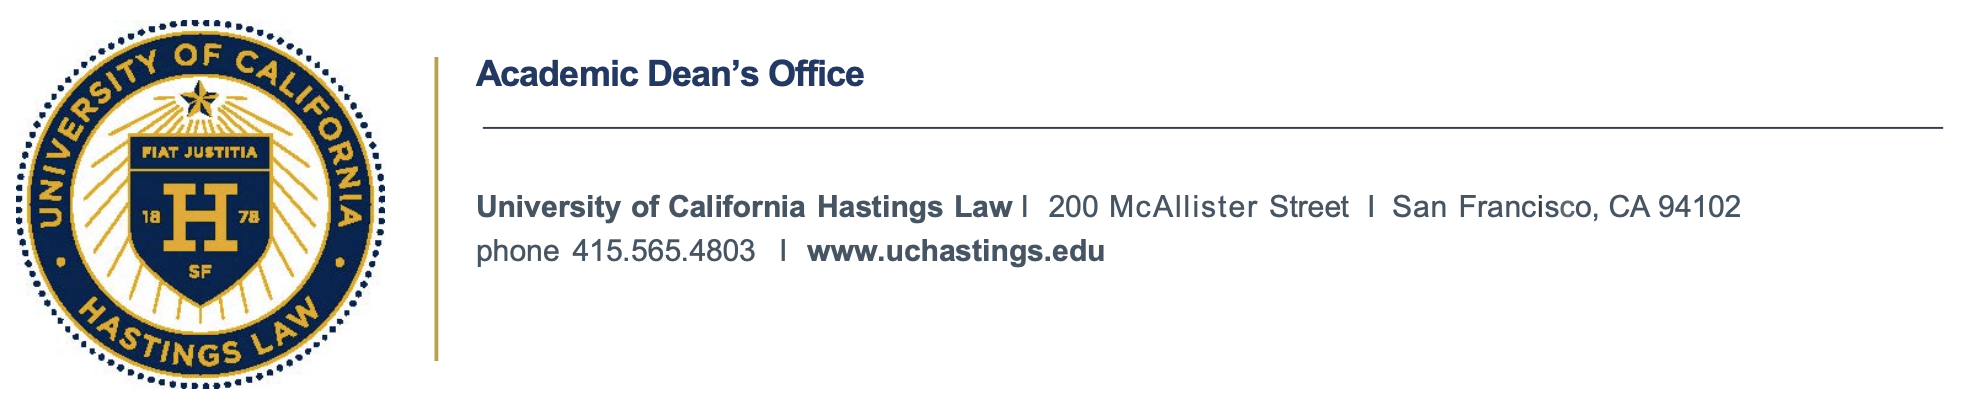 seal and Academic Dean's Office Contact info